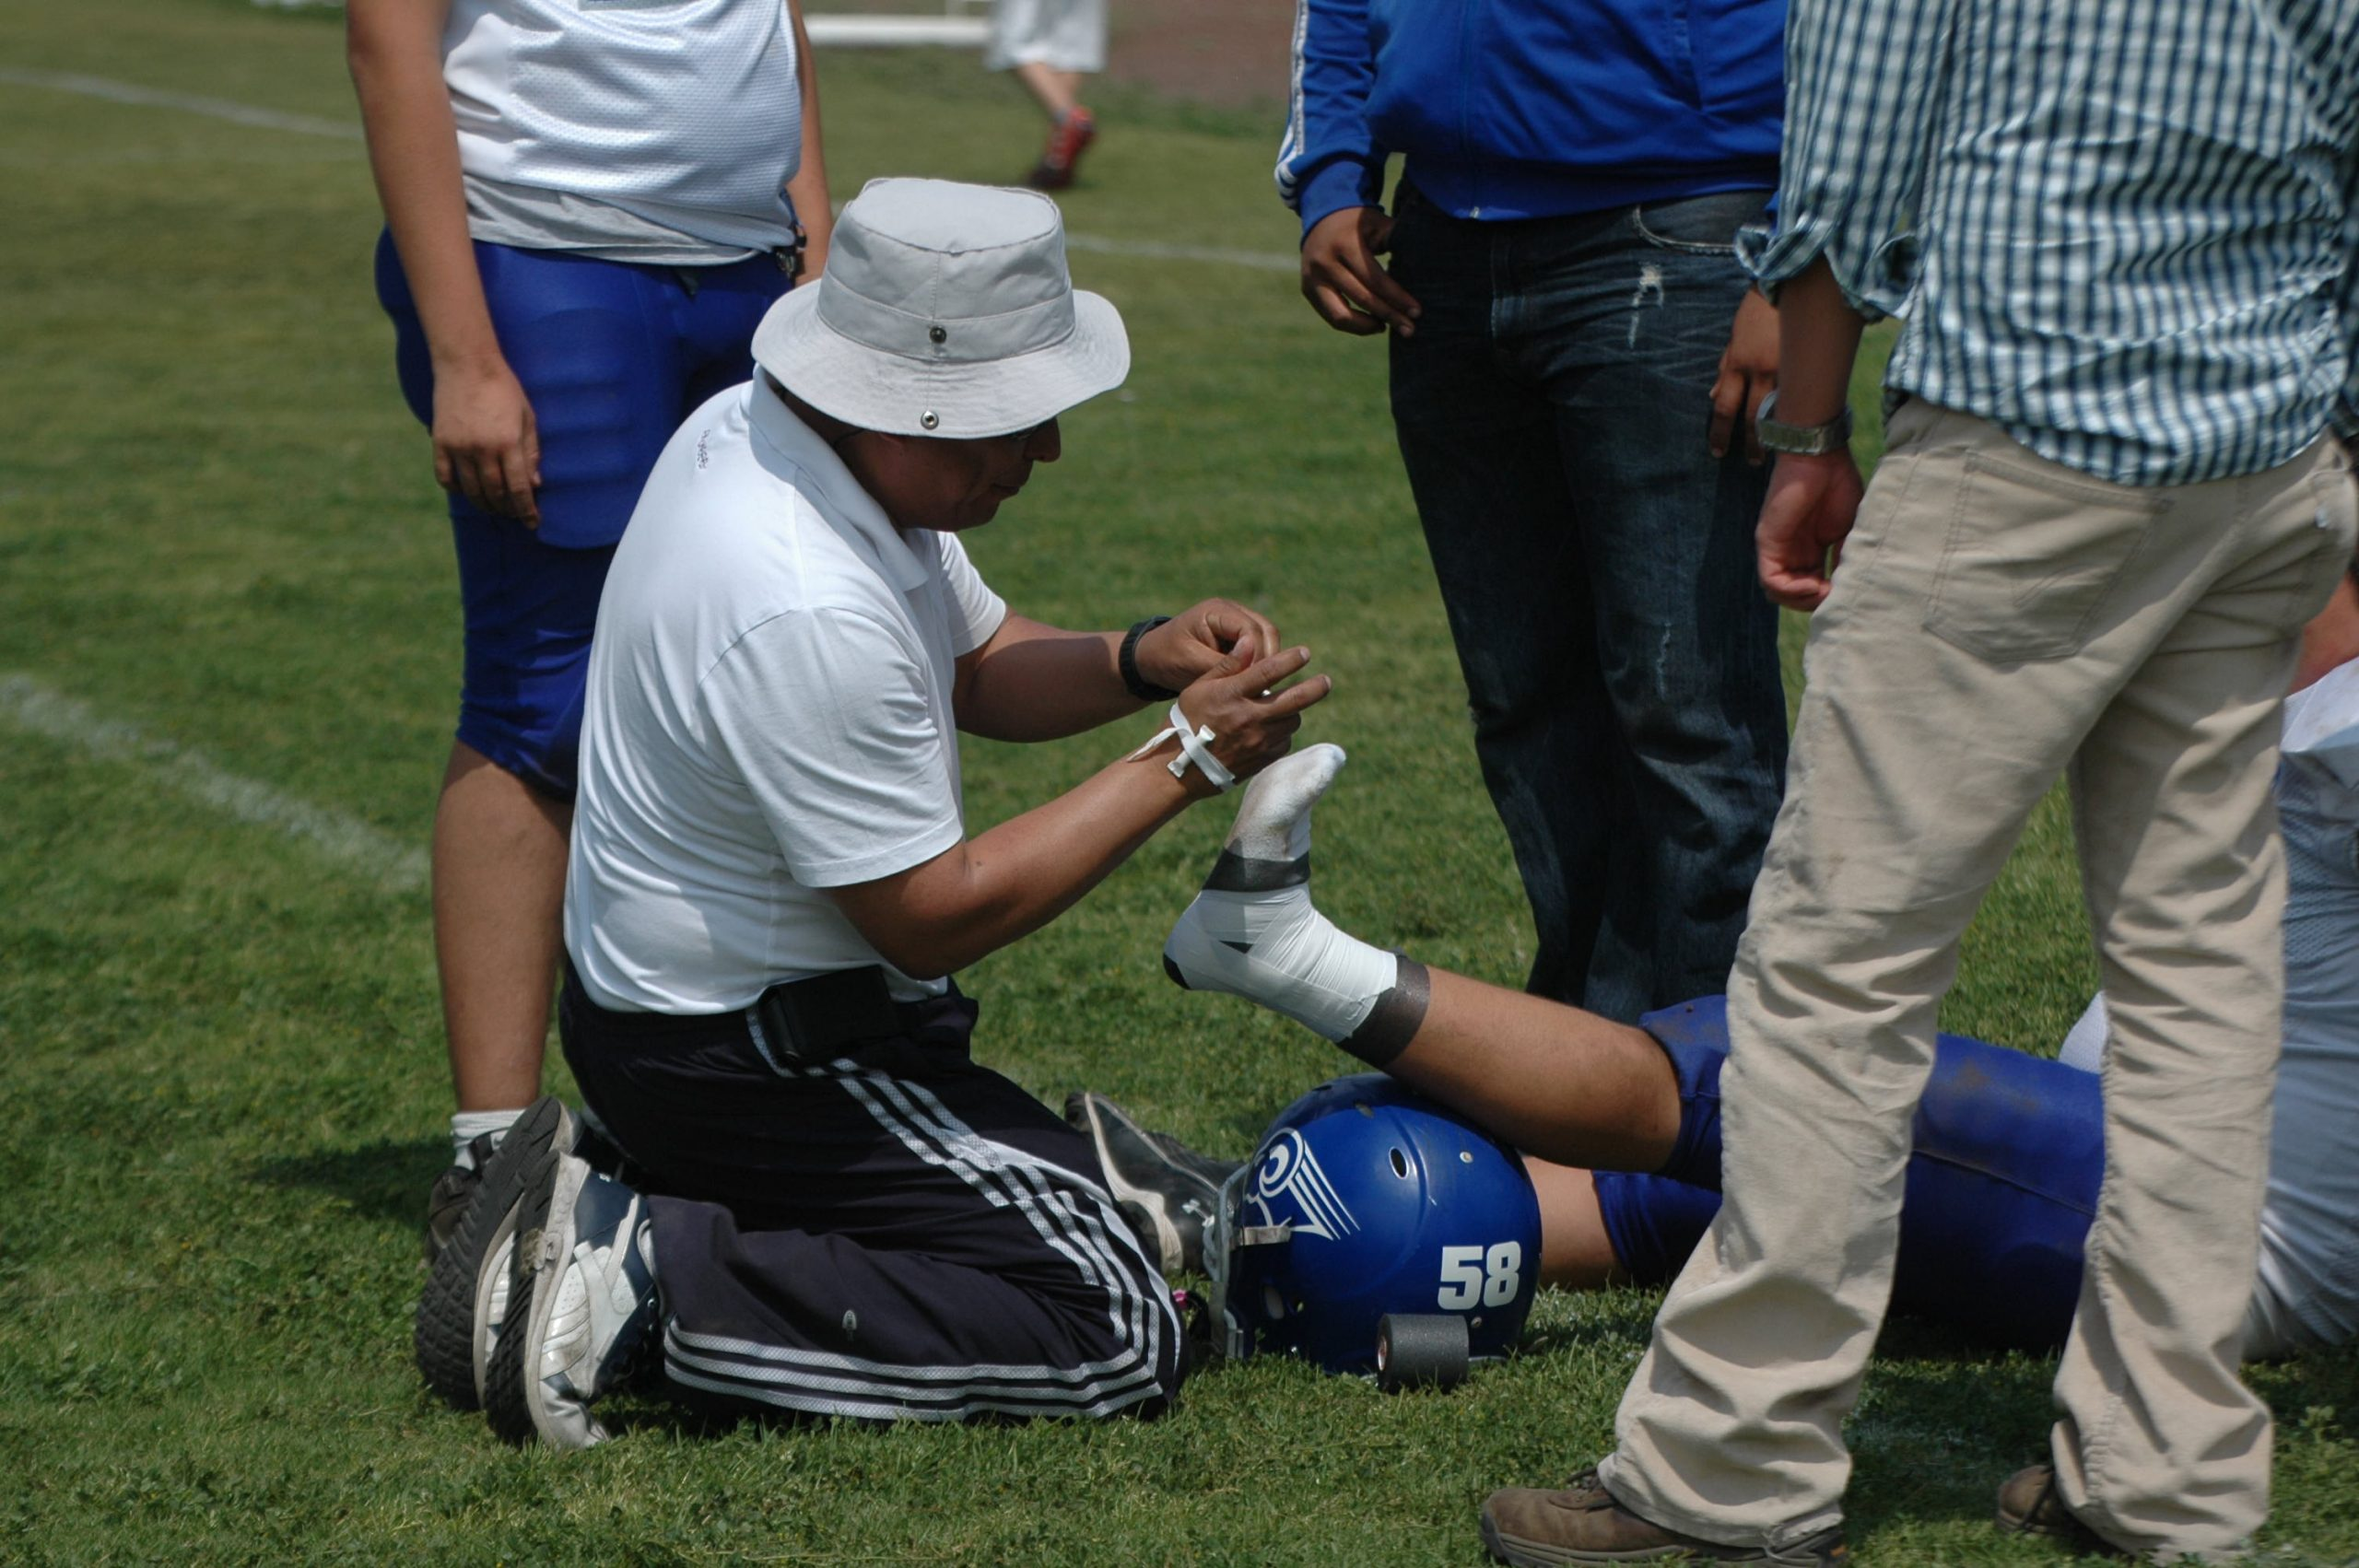 Precautions to Prevent Injuries During the Game